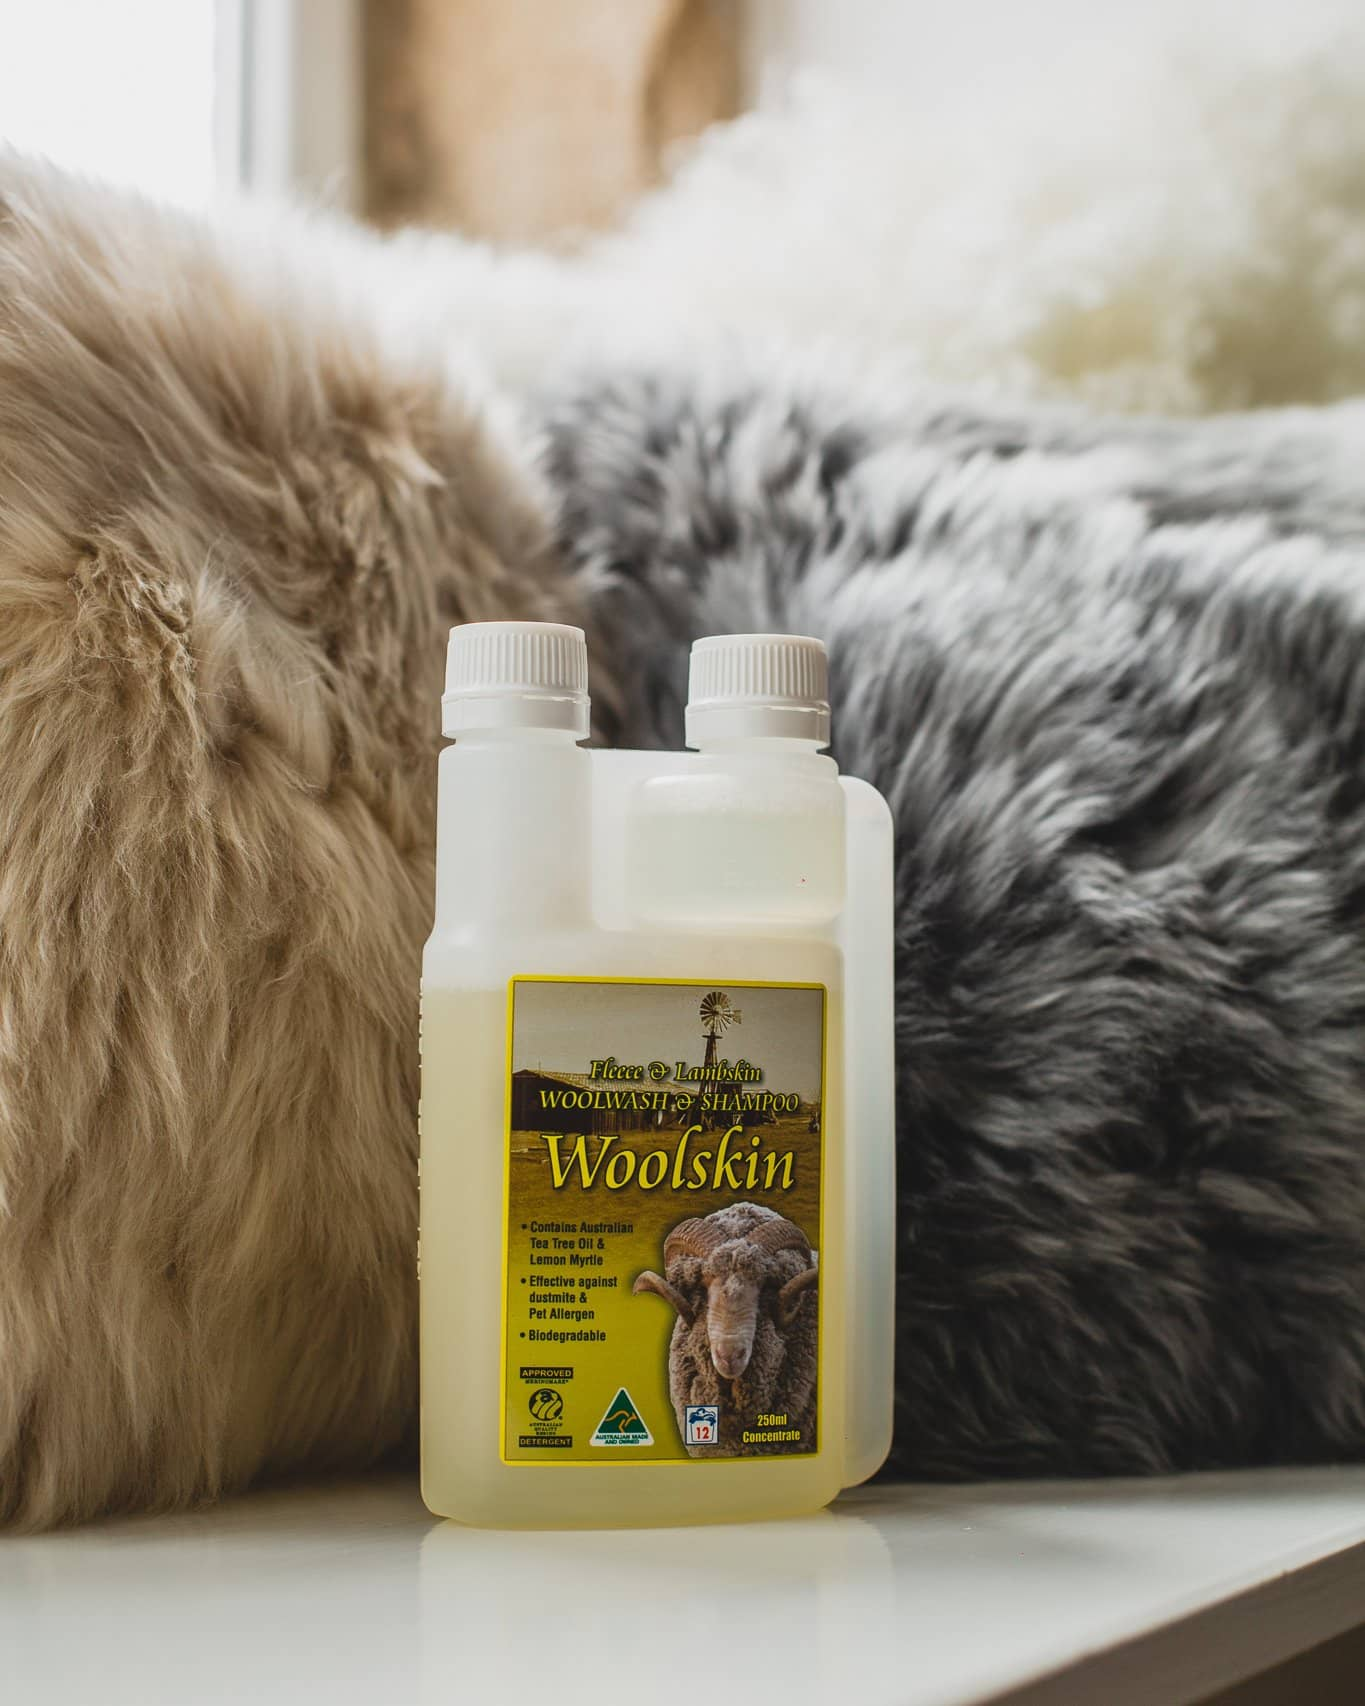 Tantech woolwash on wooden ledge